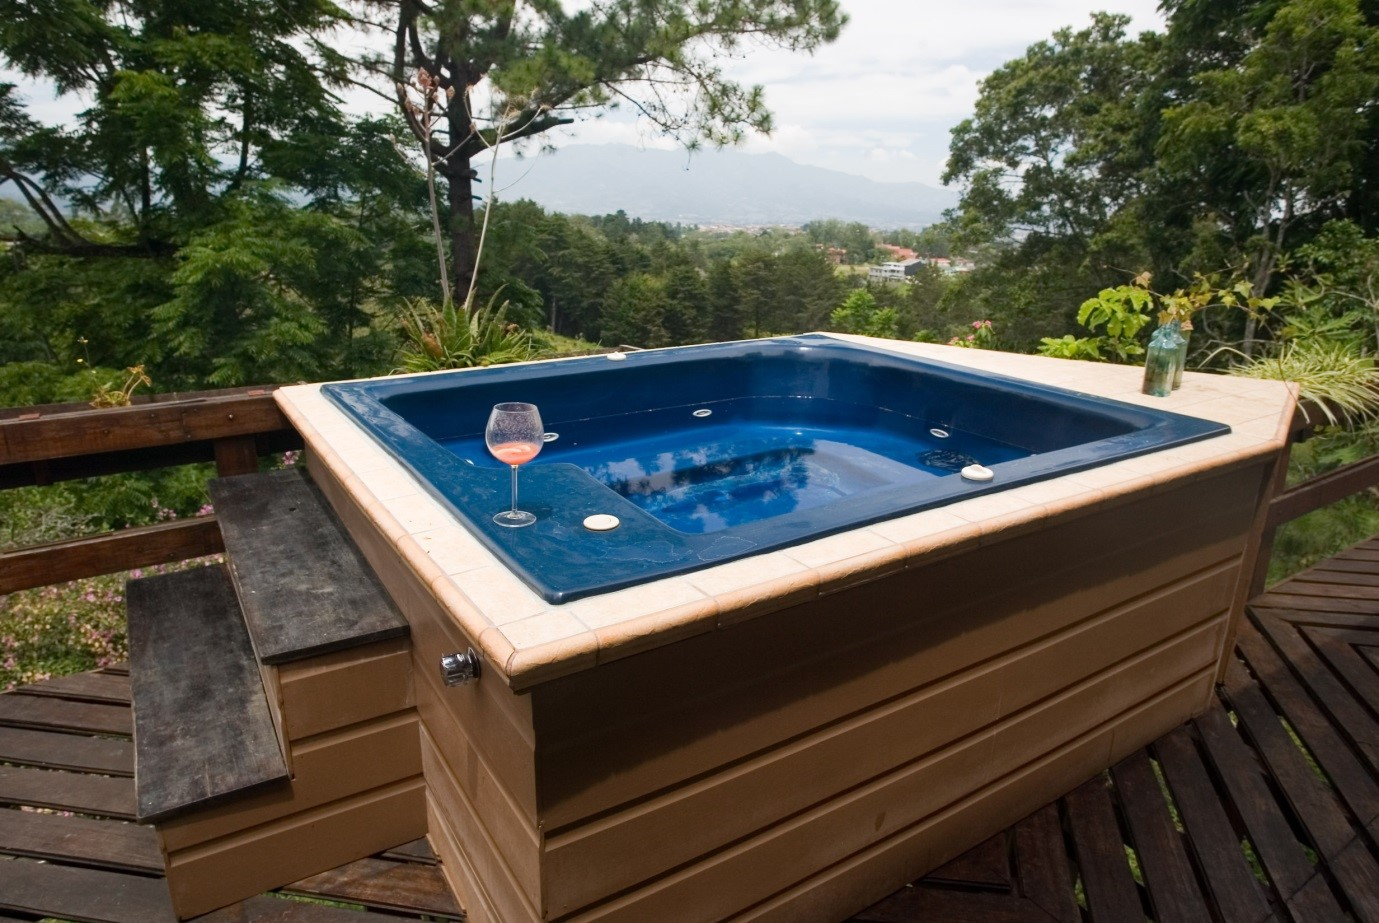 places like artesian hot tubs and spas have a fantastic